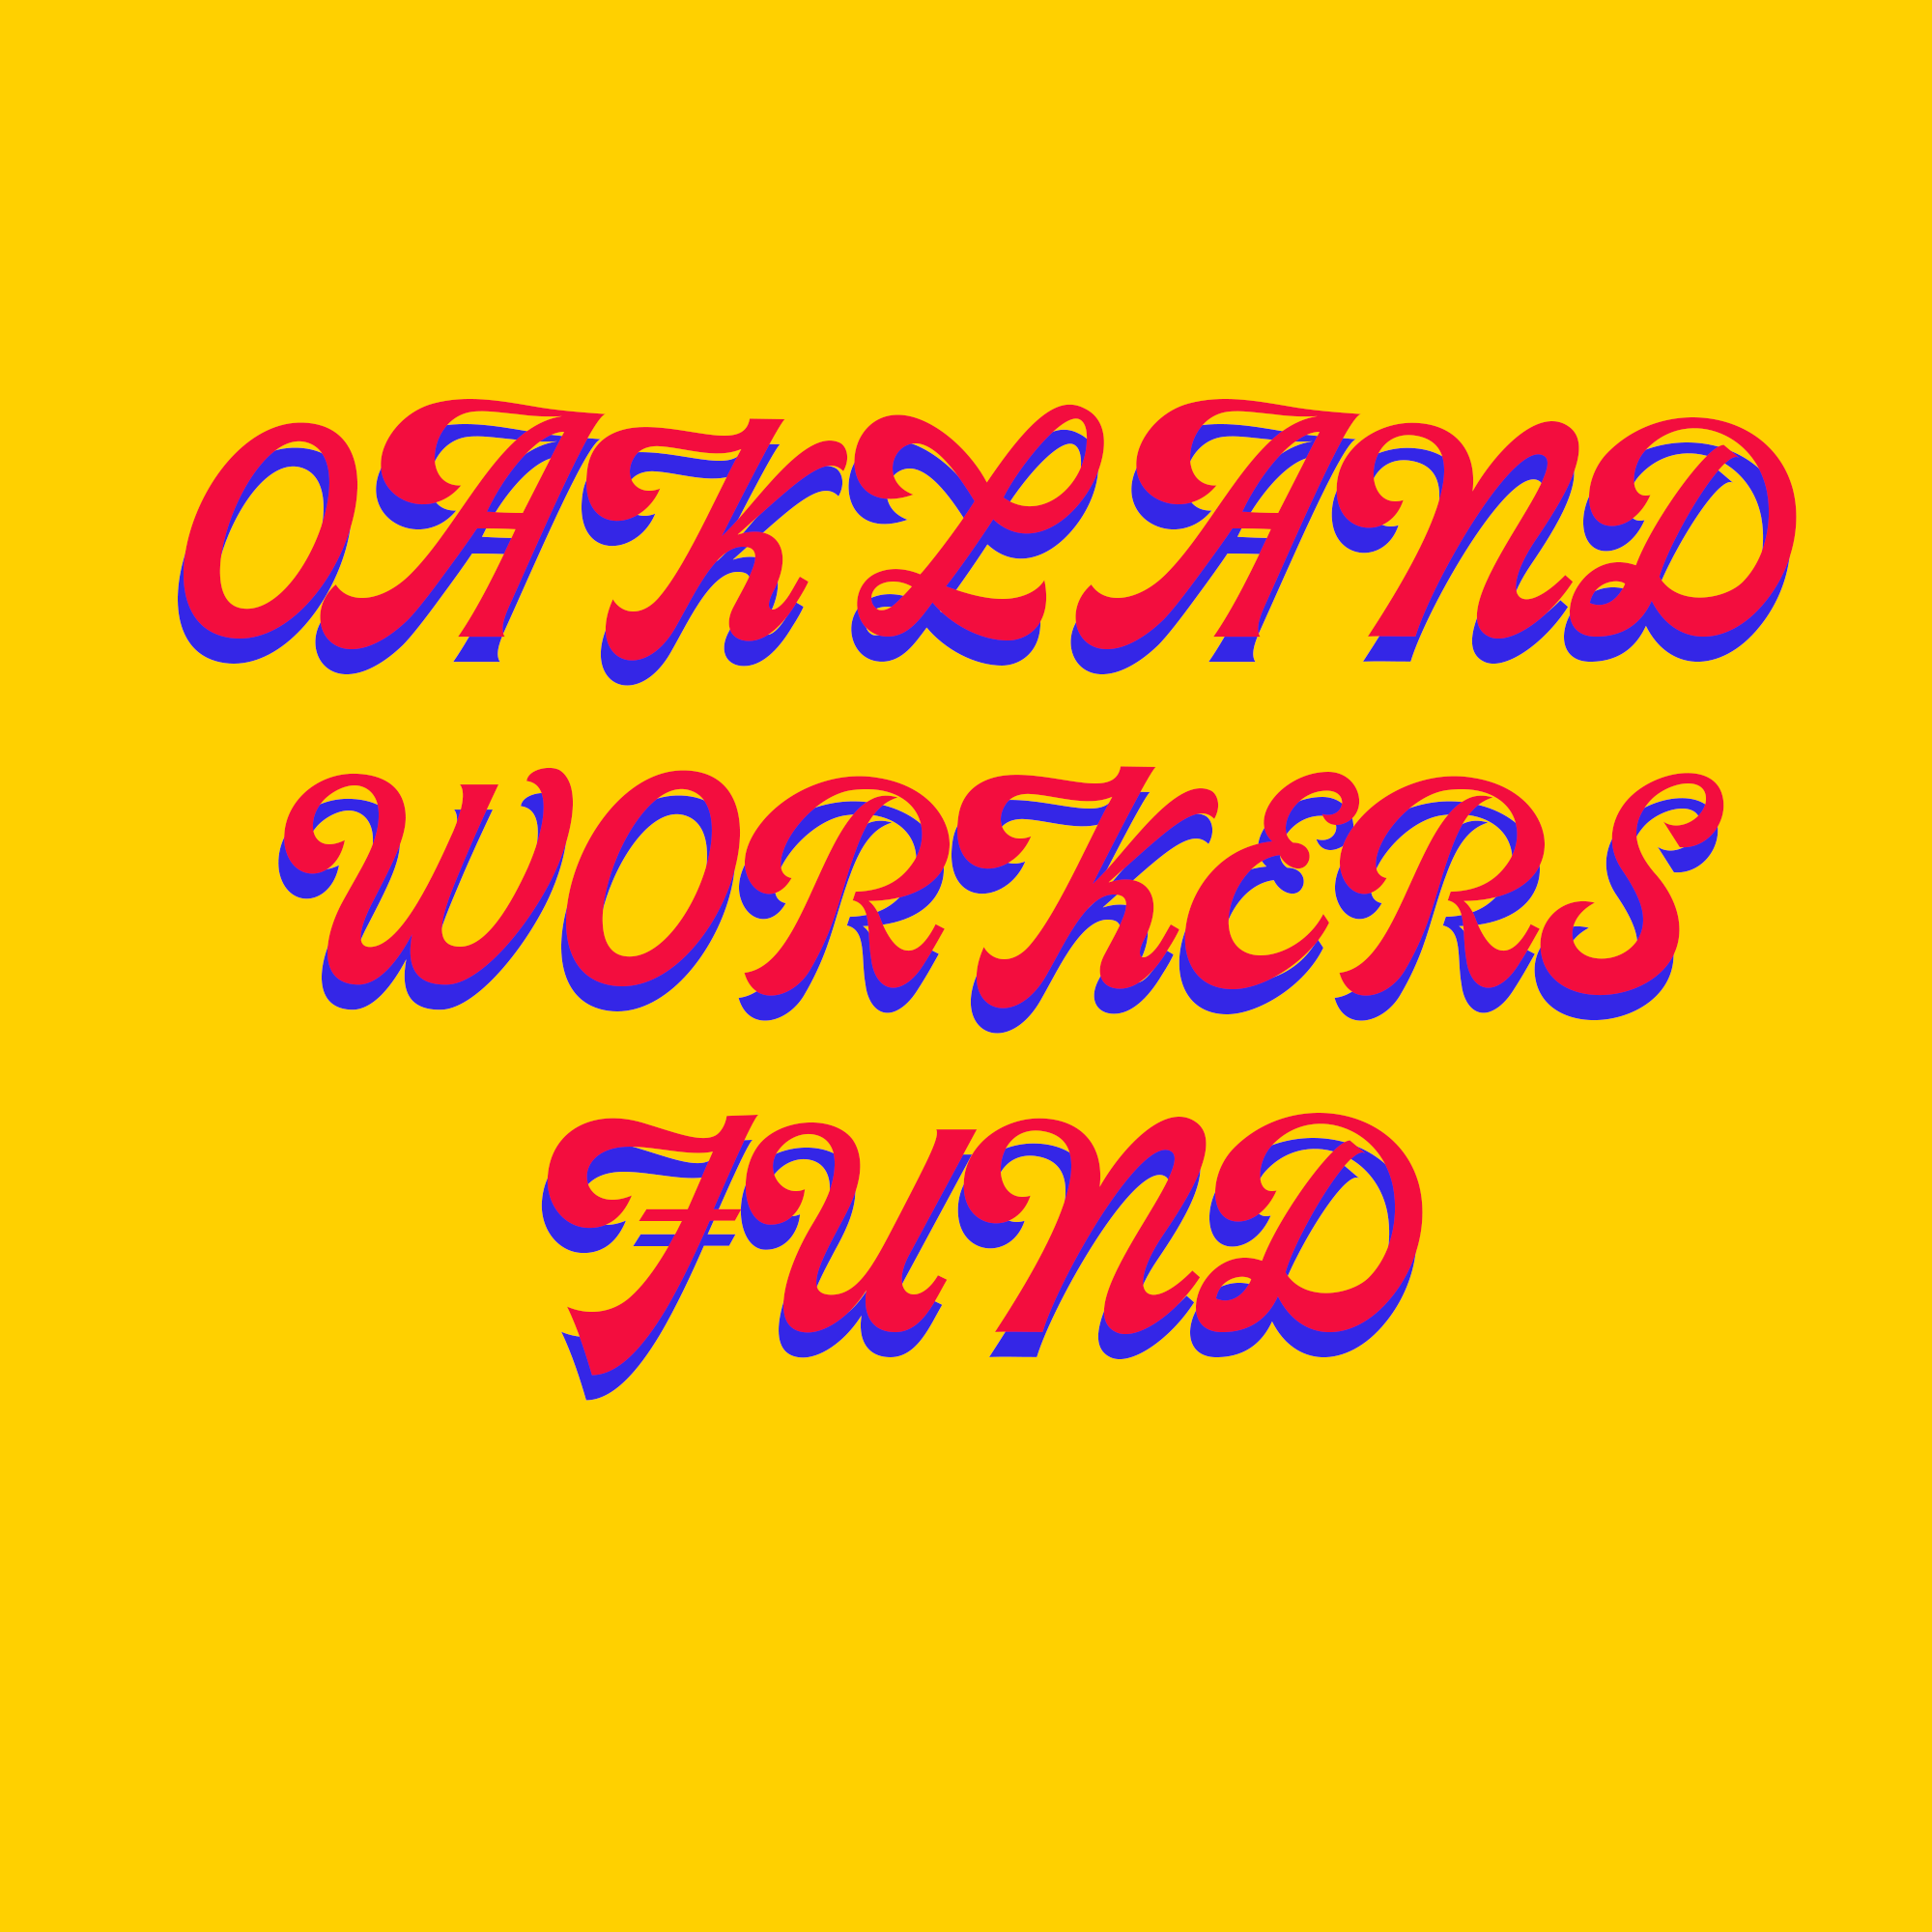 Oakland Workers Fund (Logo)